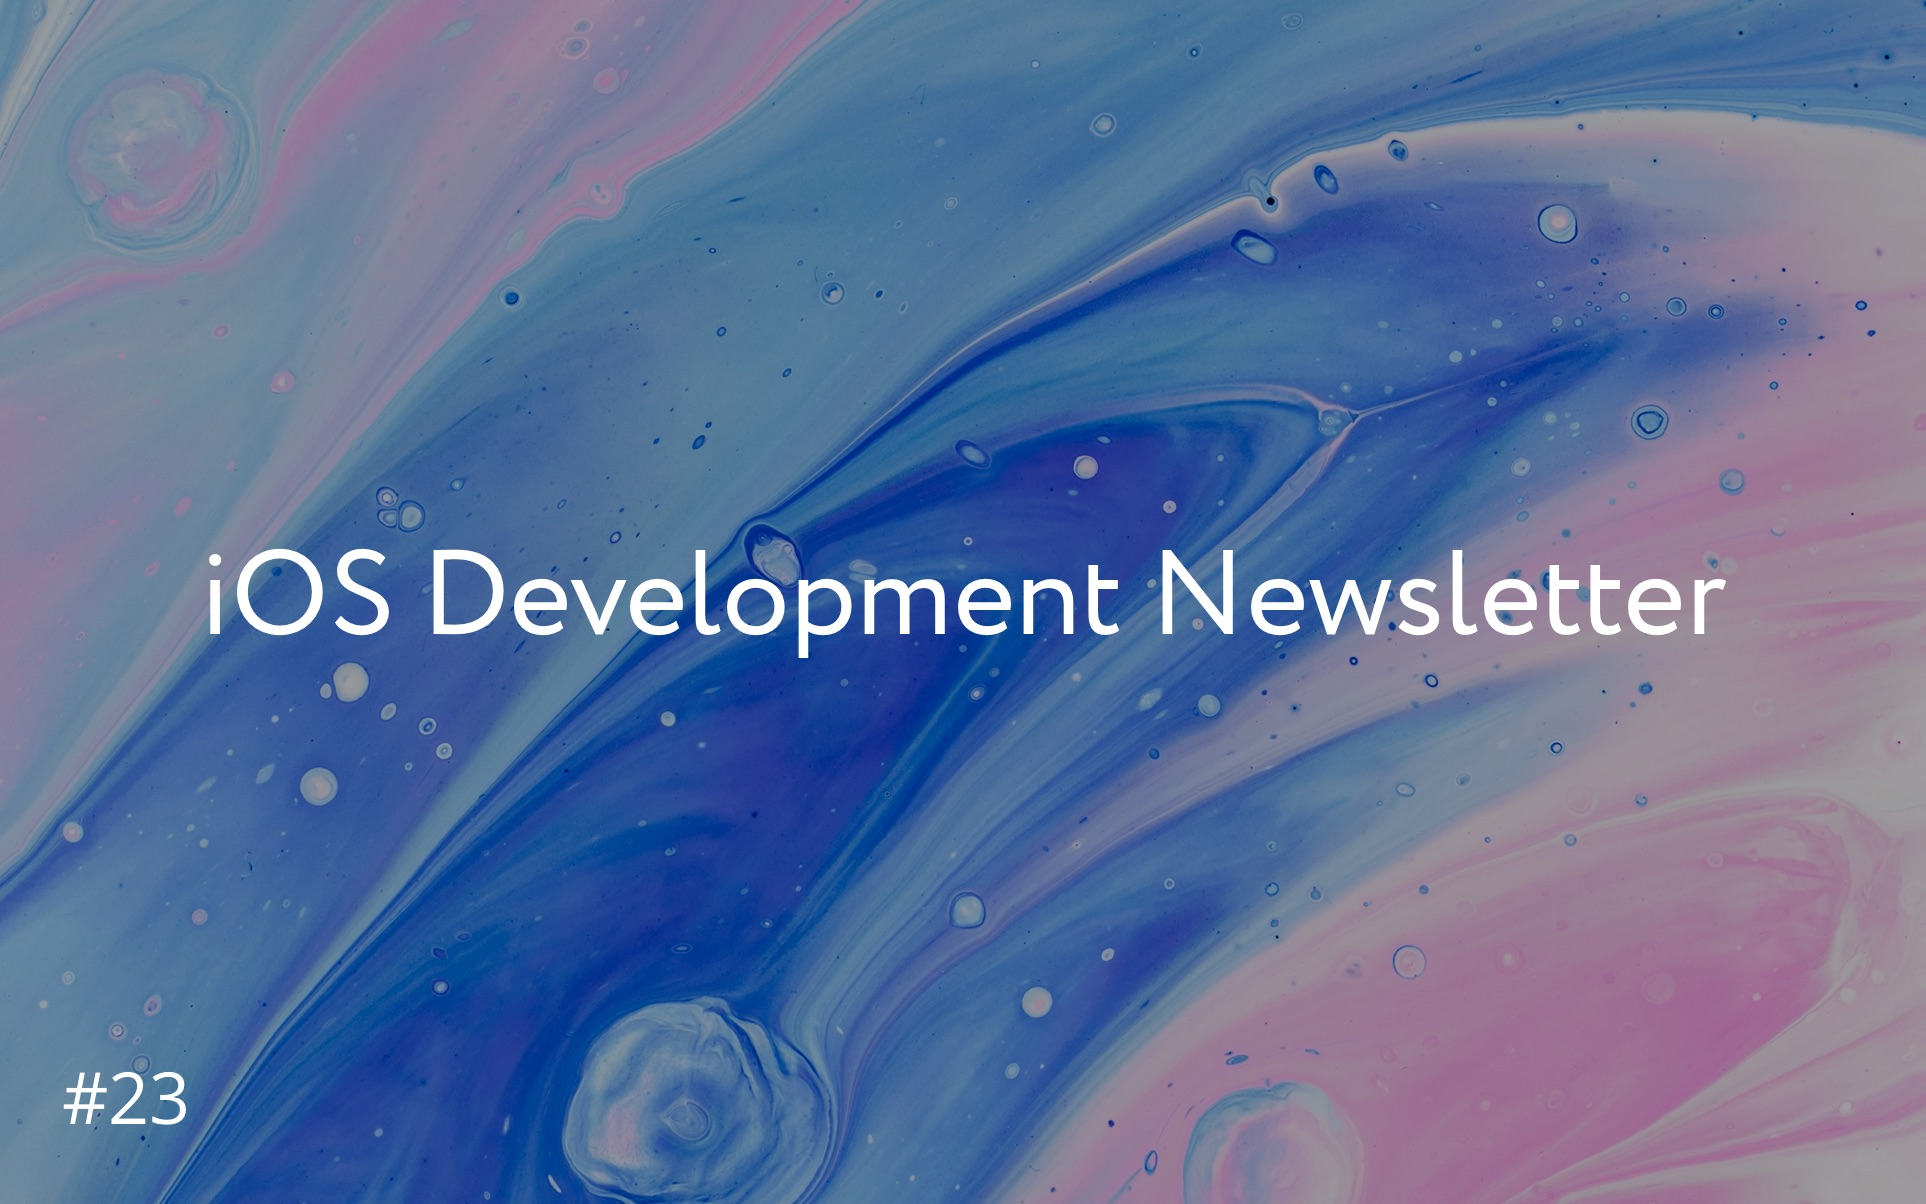 iOS Development Newsletter #23